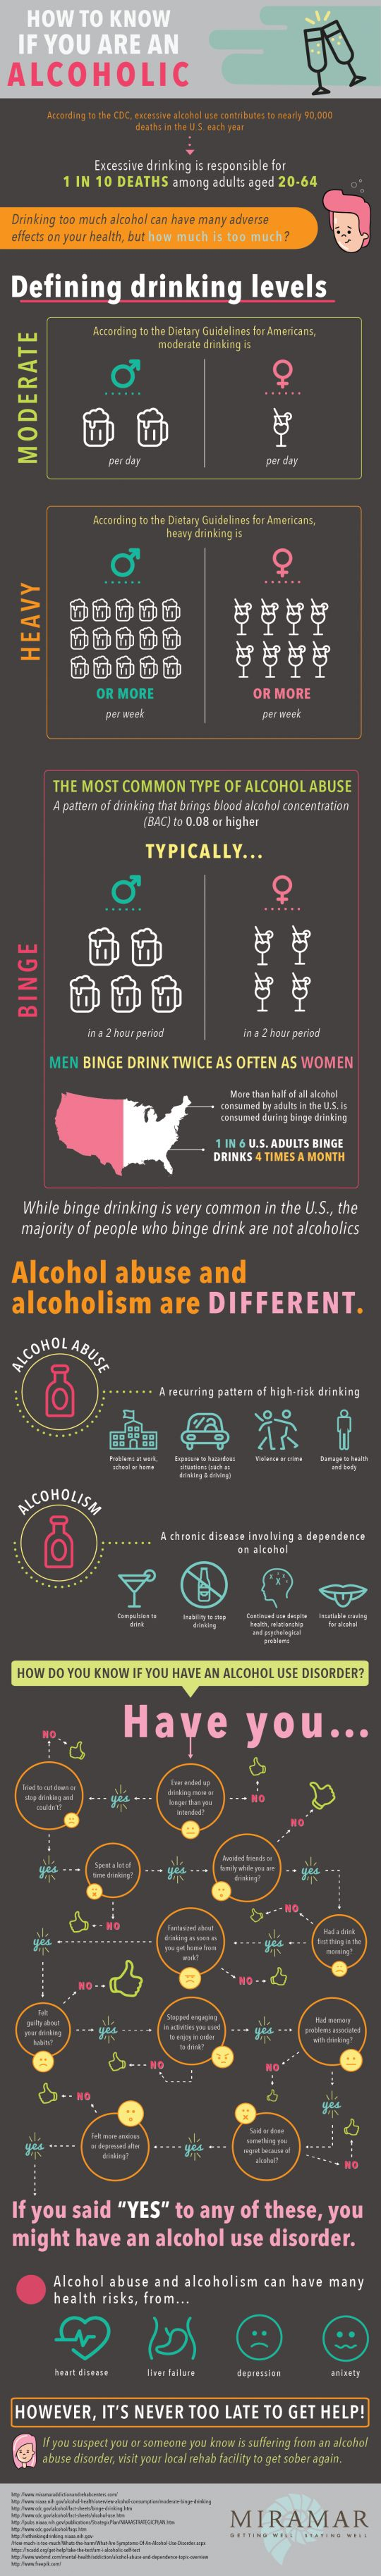 Warning Signs Of Alcoholism Vs. Alcohol Abuse: Excessive Drinking May Be Chronic Disease Or Recurring Pattern Of Behavior